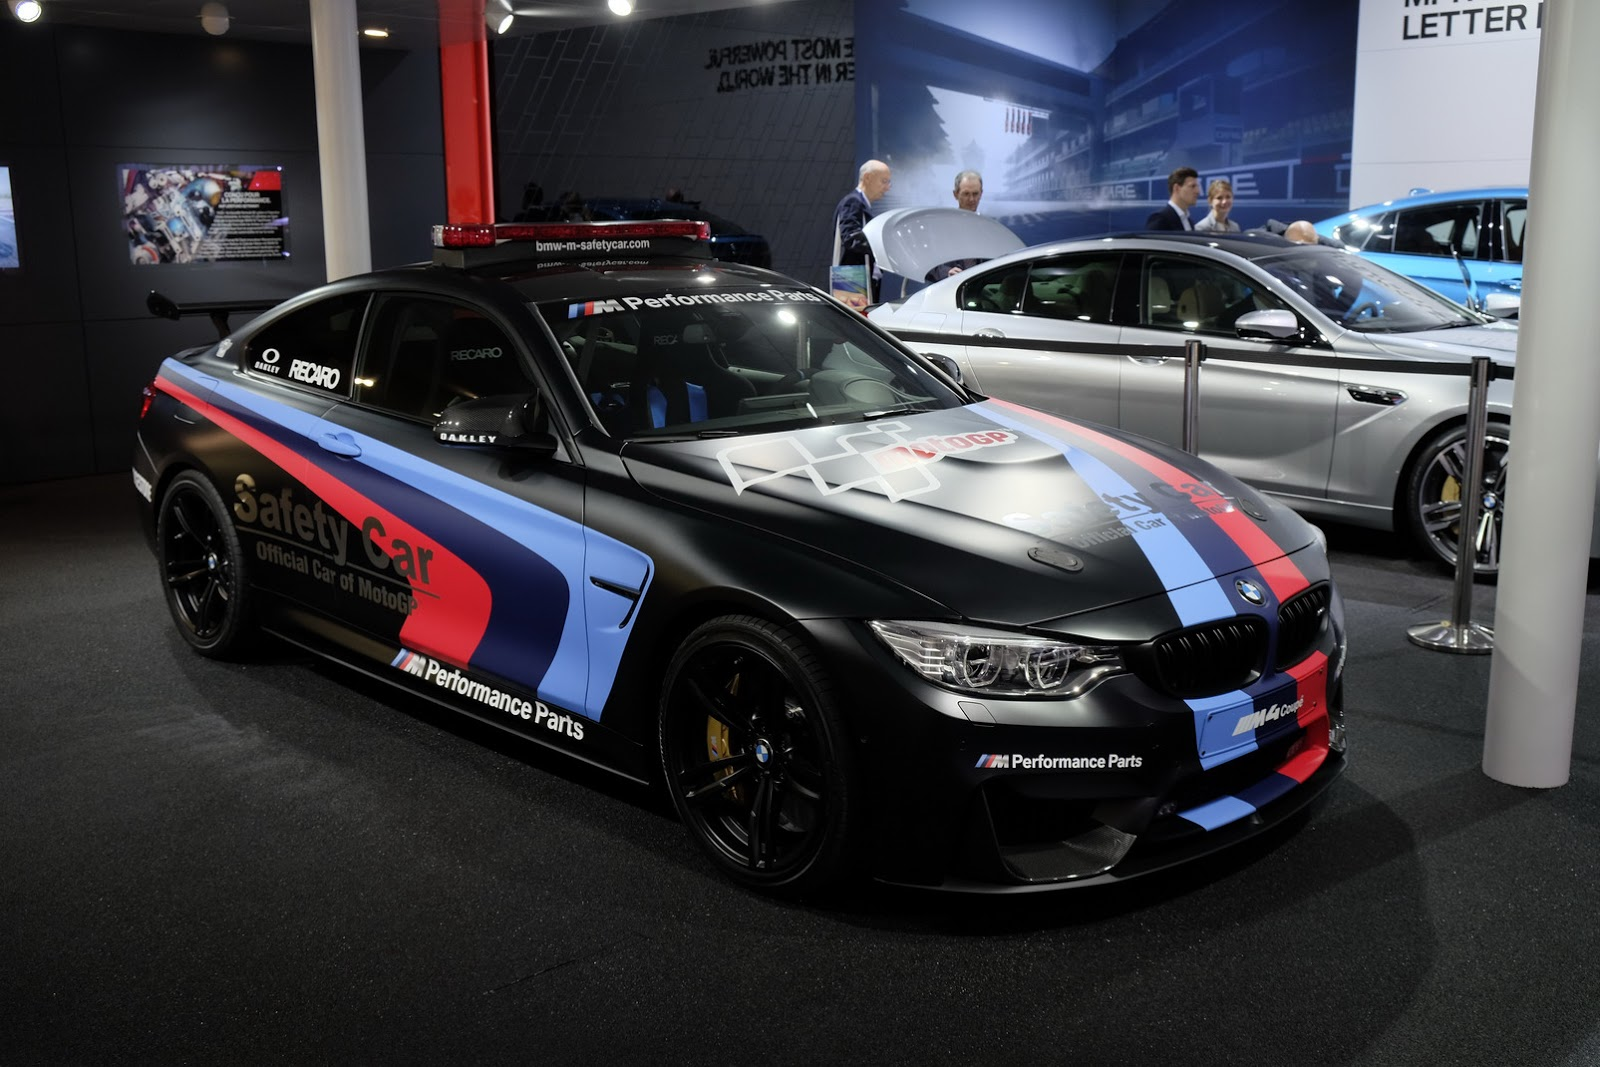 BMW M MotoGP Safety Car Uses Water To Boost Power Will Be Used - Sports cars 5 letters